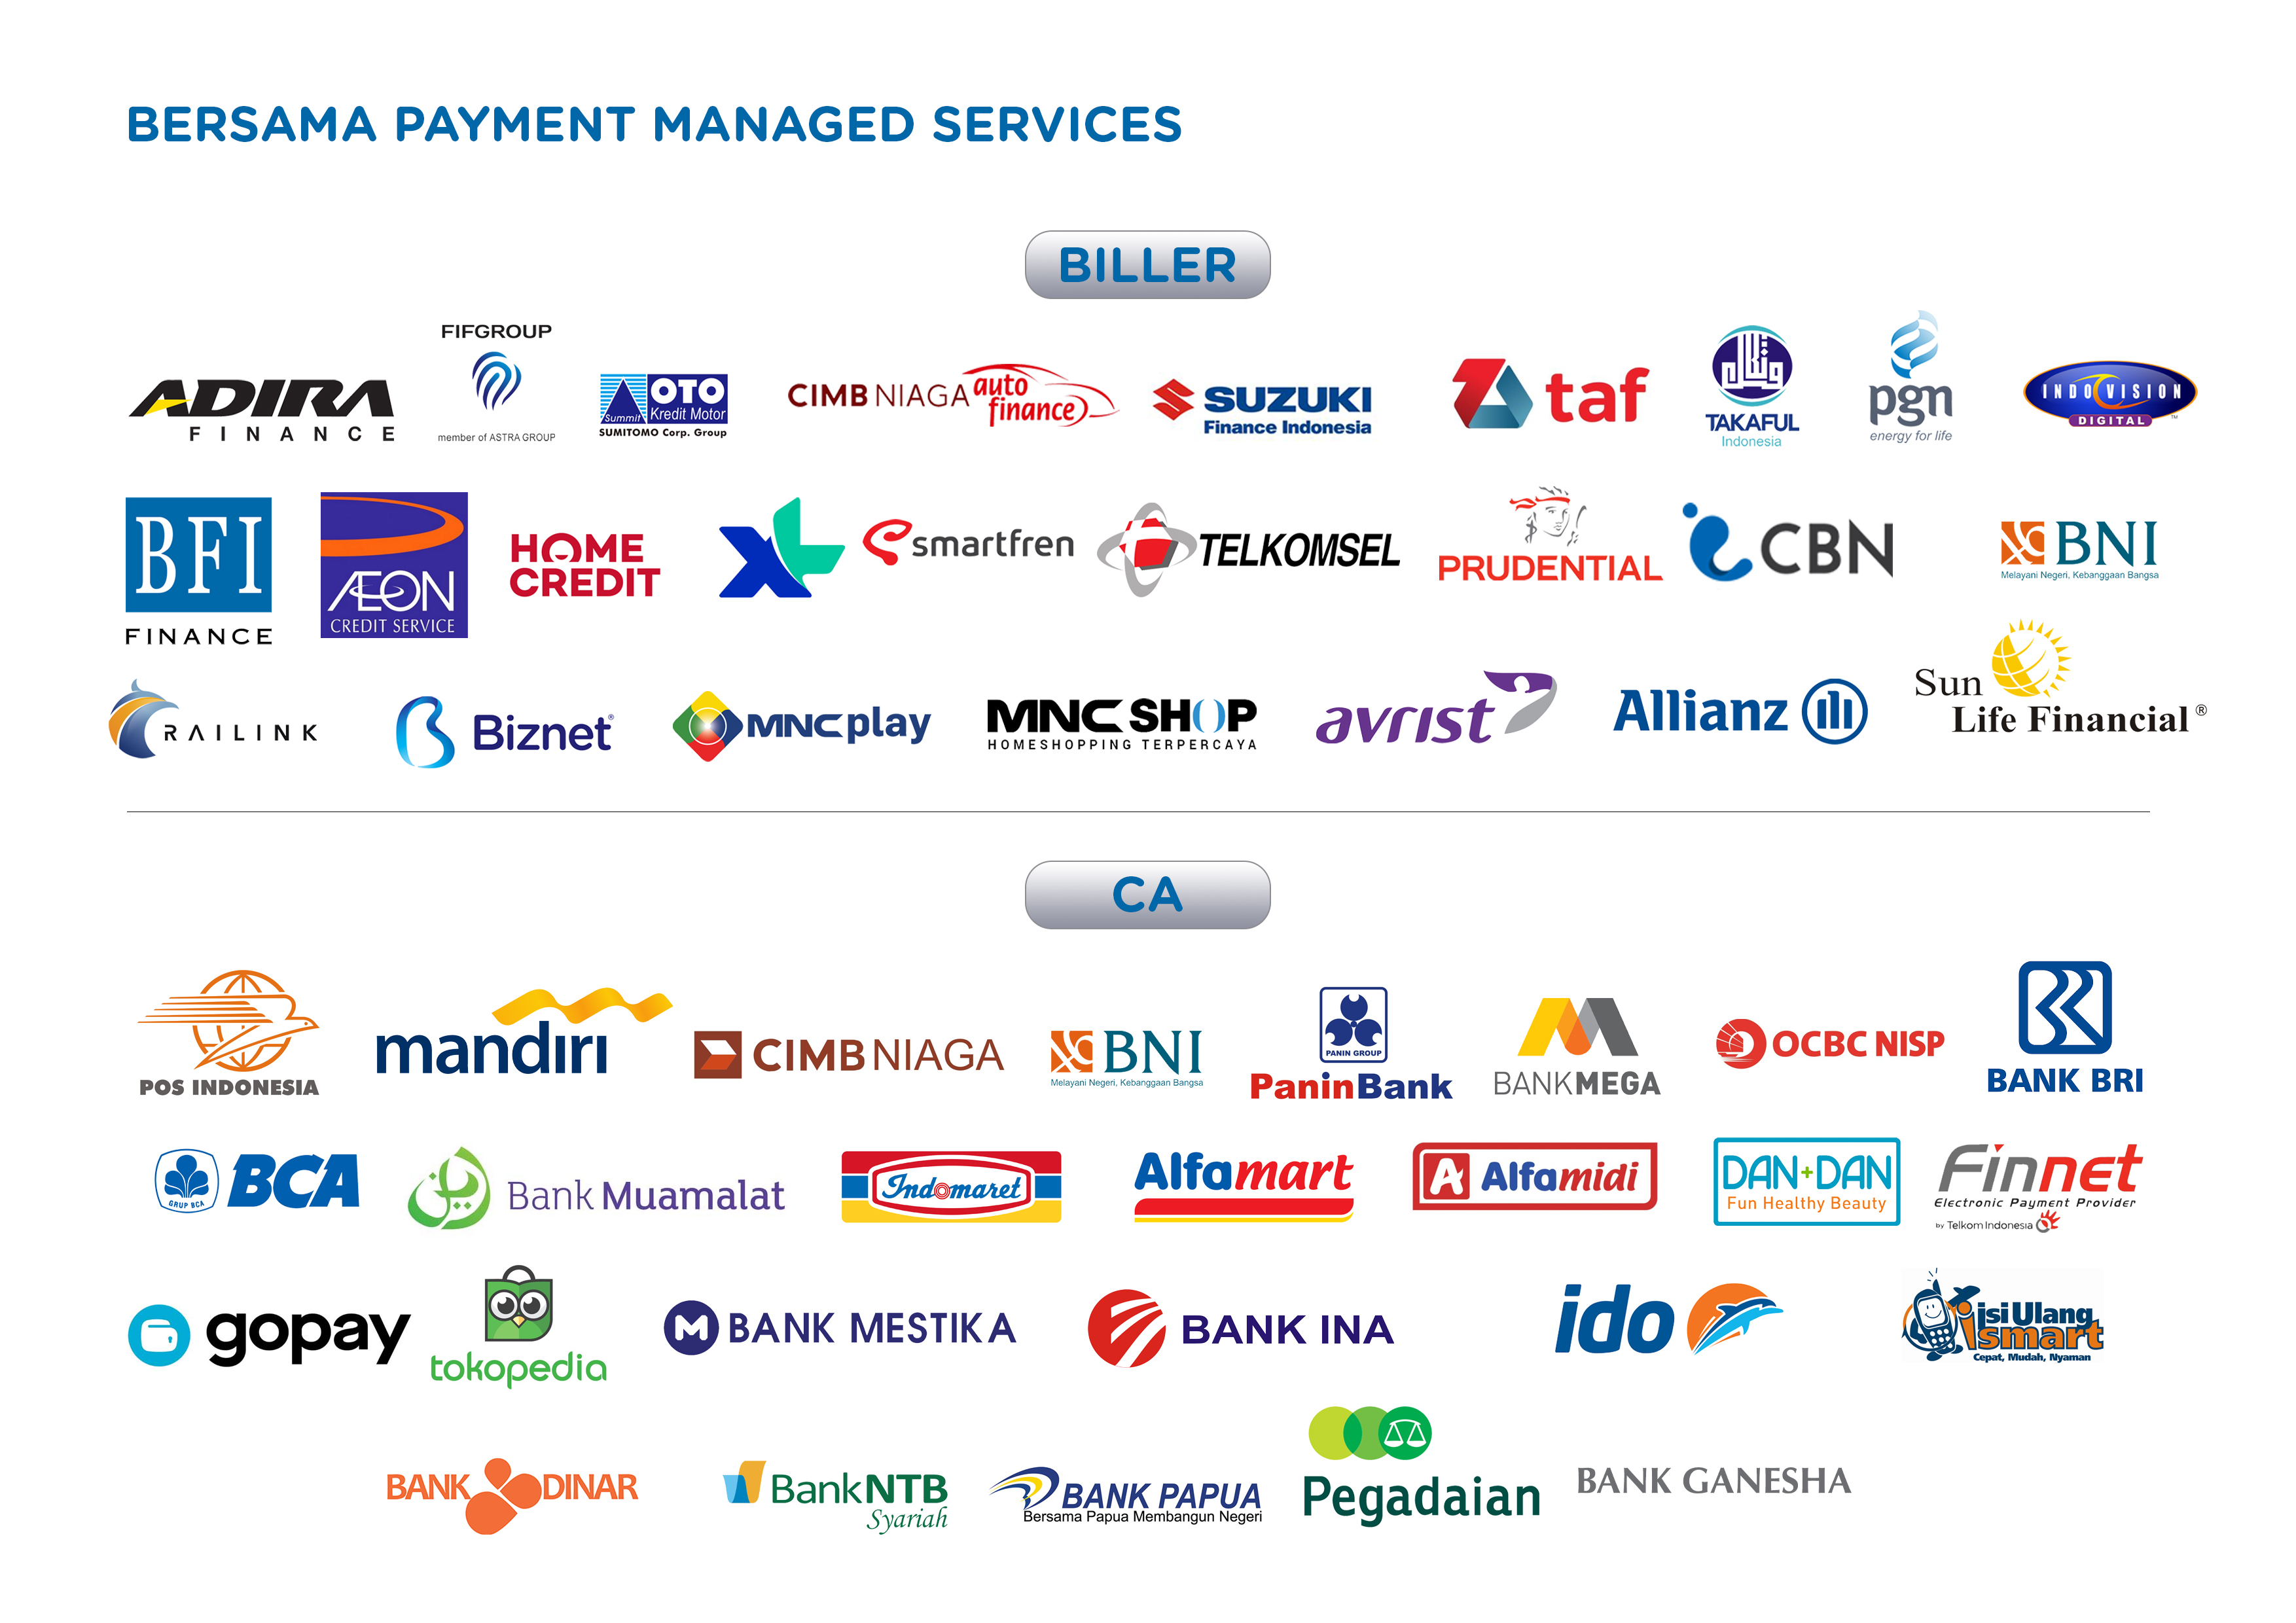 Bersama Payment Managed Services